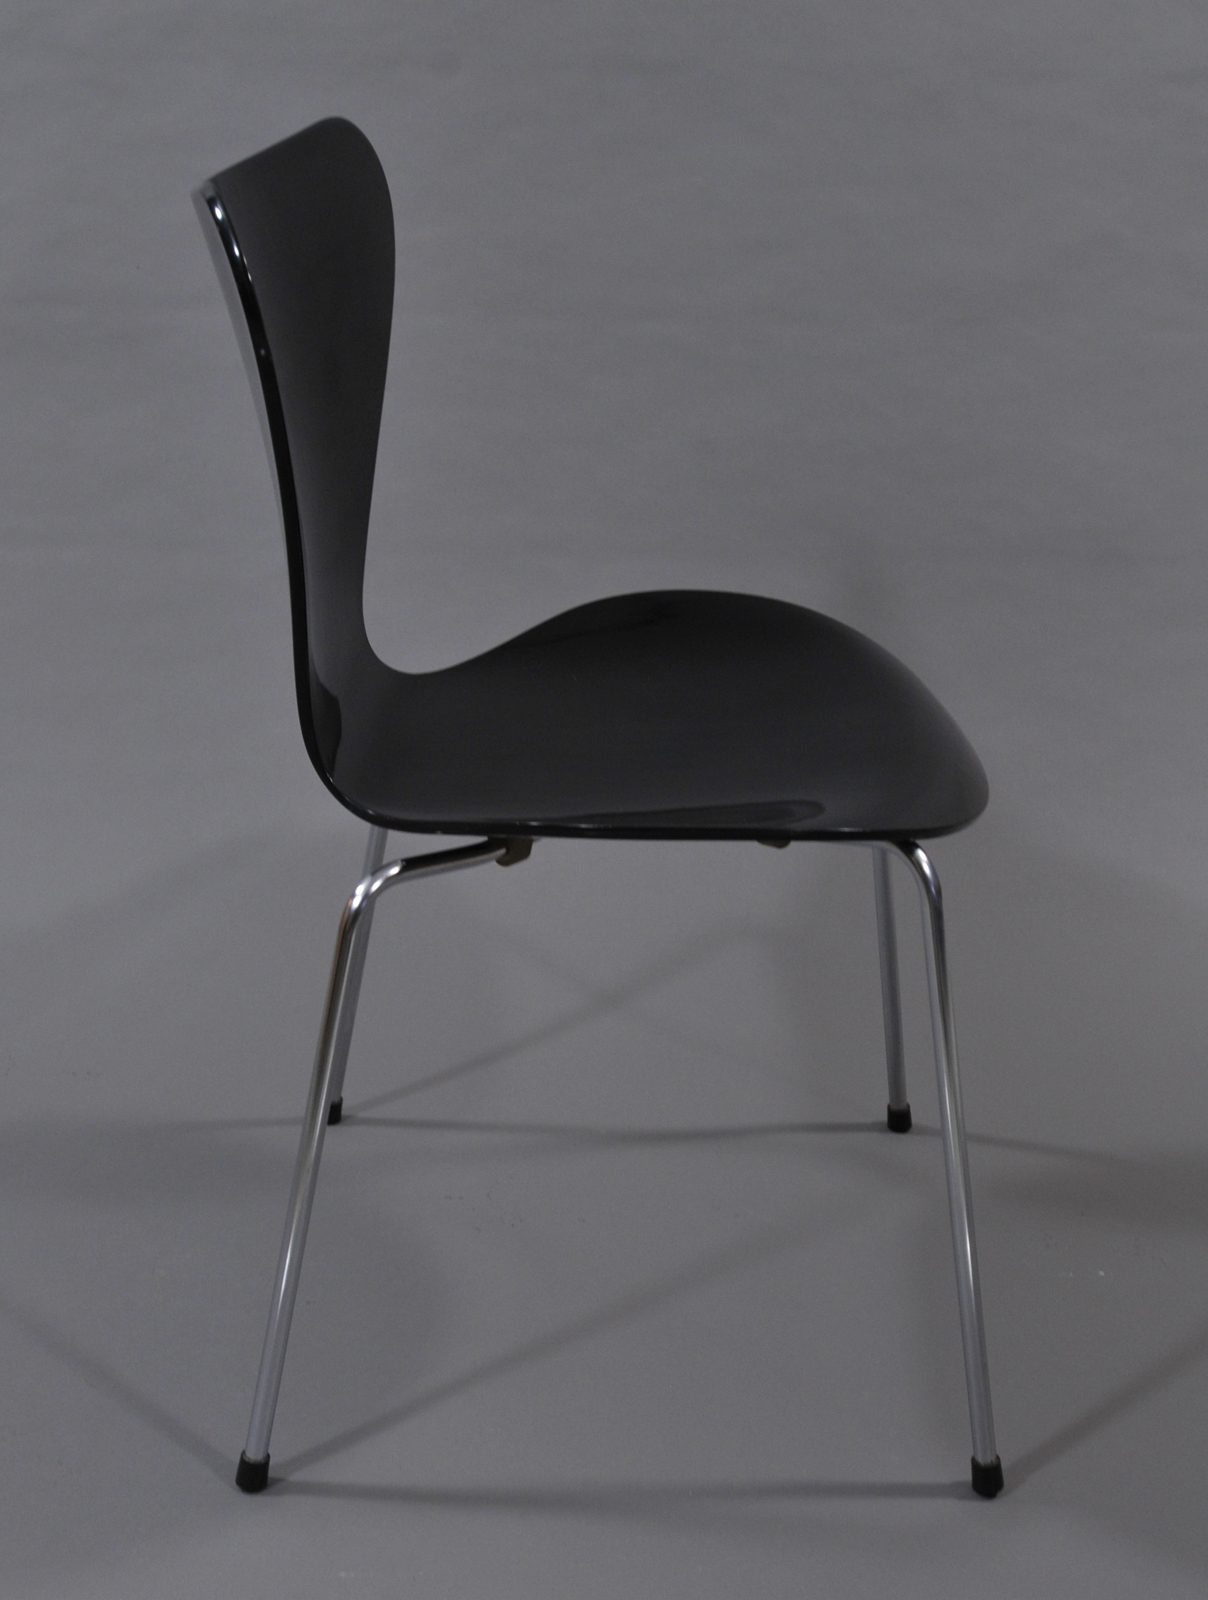 nordic chairs Moller style